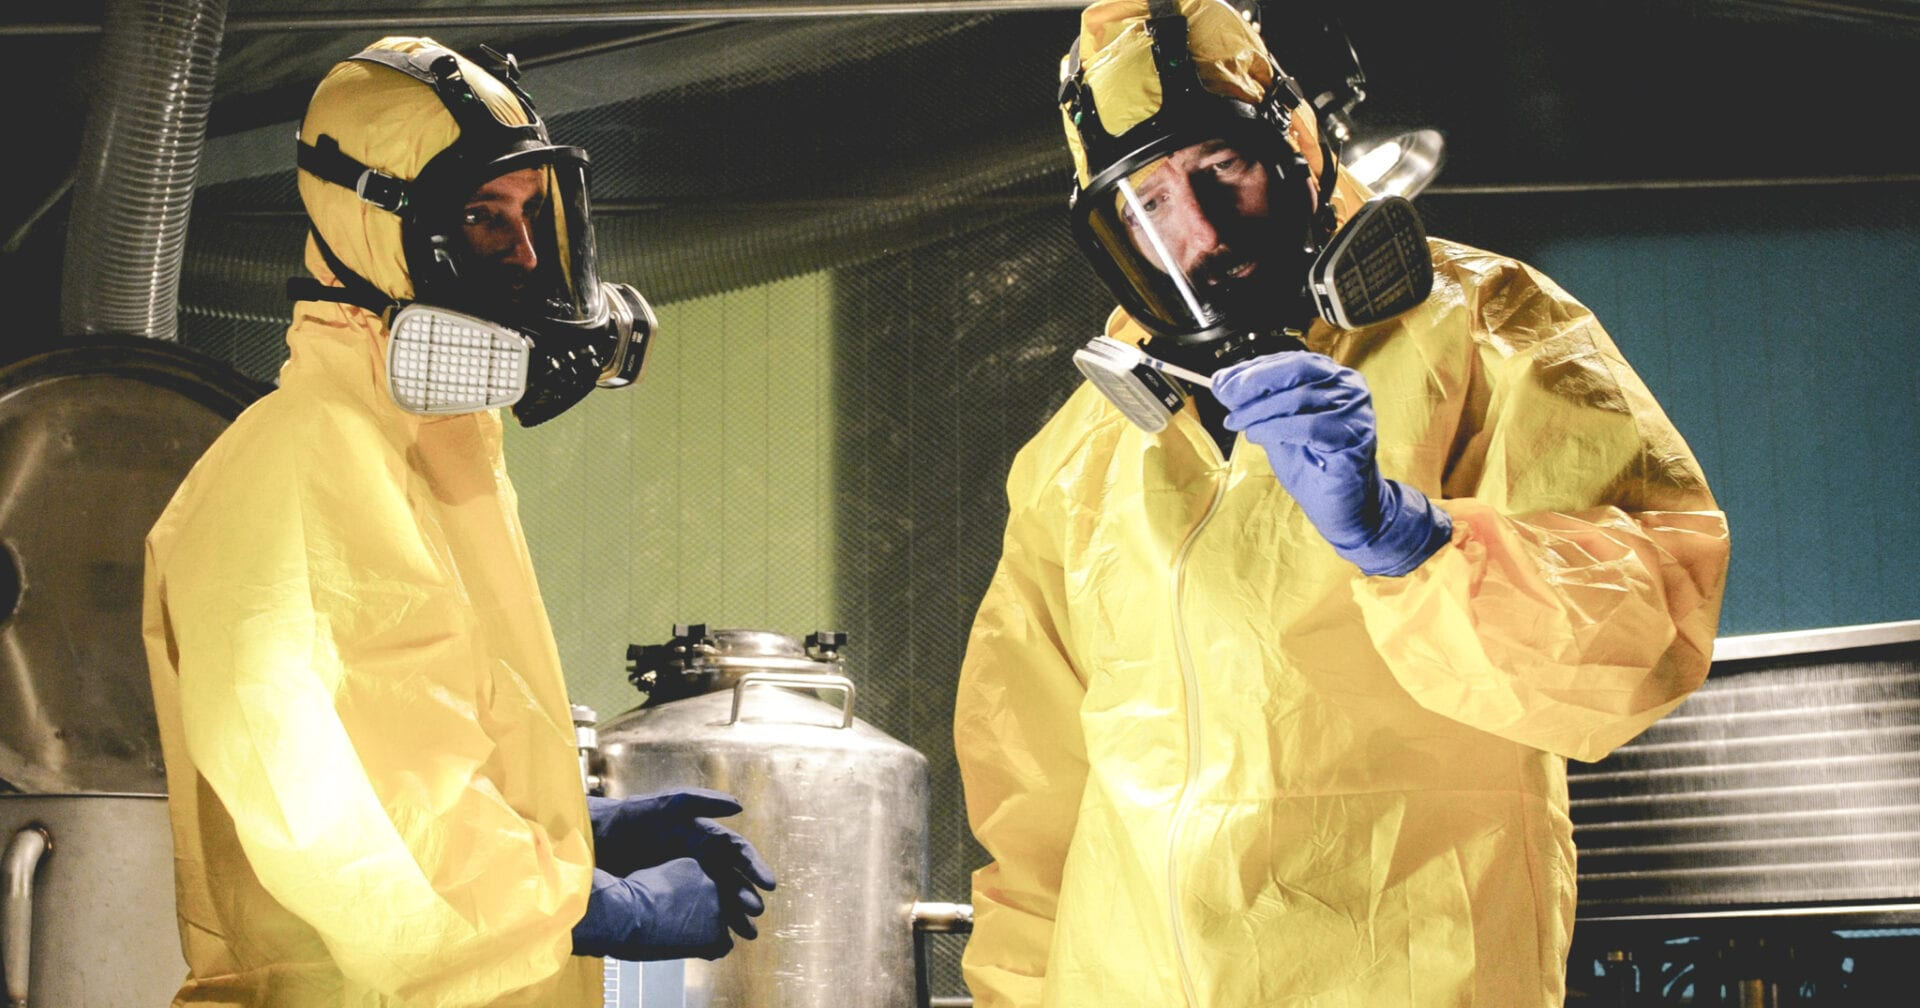 Breaking bad in real life